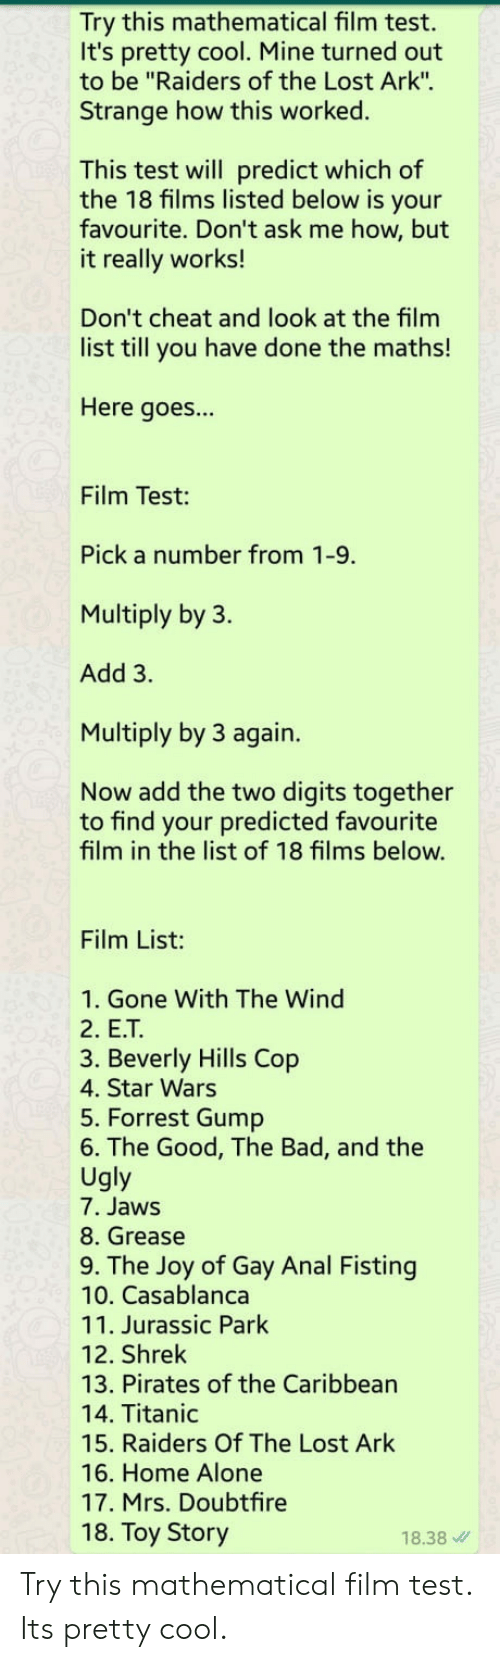 "Mrs. Doubtfire: Try this mathematical film test.  It's pretty cool. Mine turned out  to be ""Raiders of the Lost Ark"".  Strange how this worked.  This test will predict which of  the 18 films listed below is your  favourite. Don't ask me how, but  it really works!  Don't cheat and look at the film  list till you have done the maths!  Here goes...  Film Test:  Pick a number from 1-9.  Multiply by 3.  Add 3.  Multiply by 3 again.  Now add the two digits together  to find your predicted favourite  film in the list of 18 films below.  Film List:  1. Gone With The Wind  2. E.T  3. Beverly Hills Cop  4. Star Wars  5. Forrest Gump  6. The Good, The Bad, and the  Ugly  7. Jaws  8. Grease  9. The Joy of Gay Anal Fisting  10. Casablanca  11. Jurassic Park  12. Shrek  13. Pirates of the Caribbean  14. Titanic  15. Raiders Of The Lost Ark  16. Home Alone  17. Mrs. Doubtfire  18. Toy Story  18.38 Try this mathematical film test. Its pretty cool."